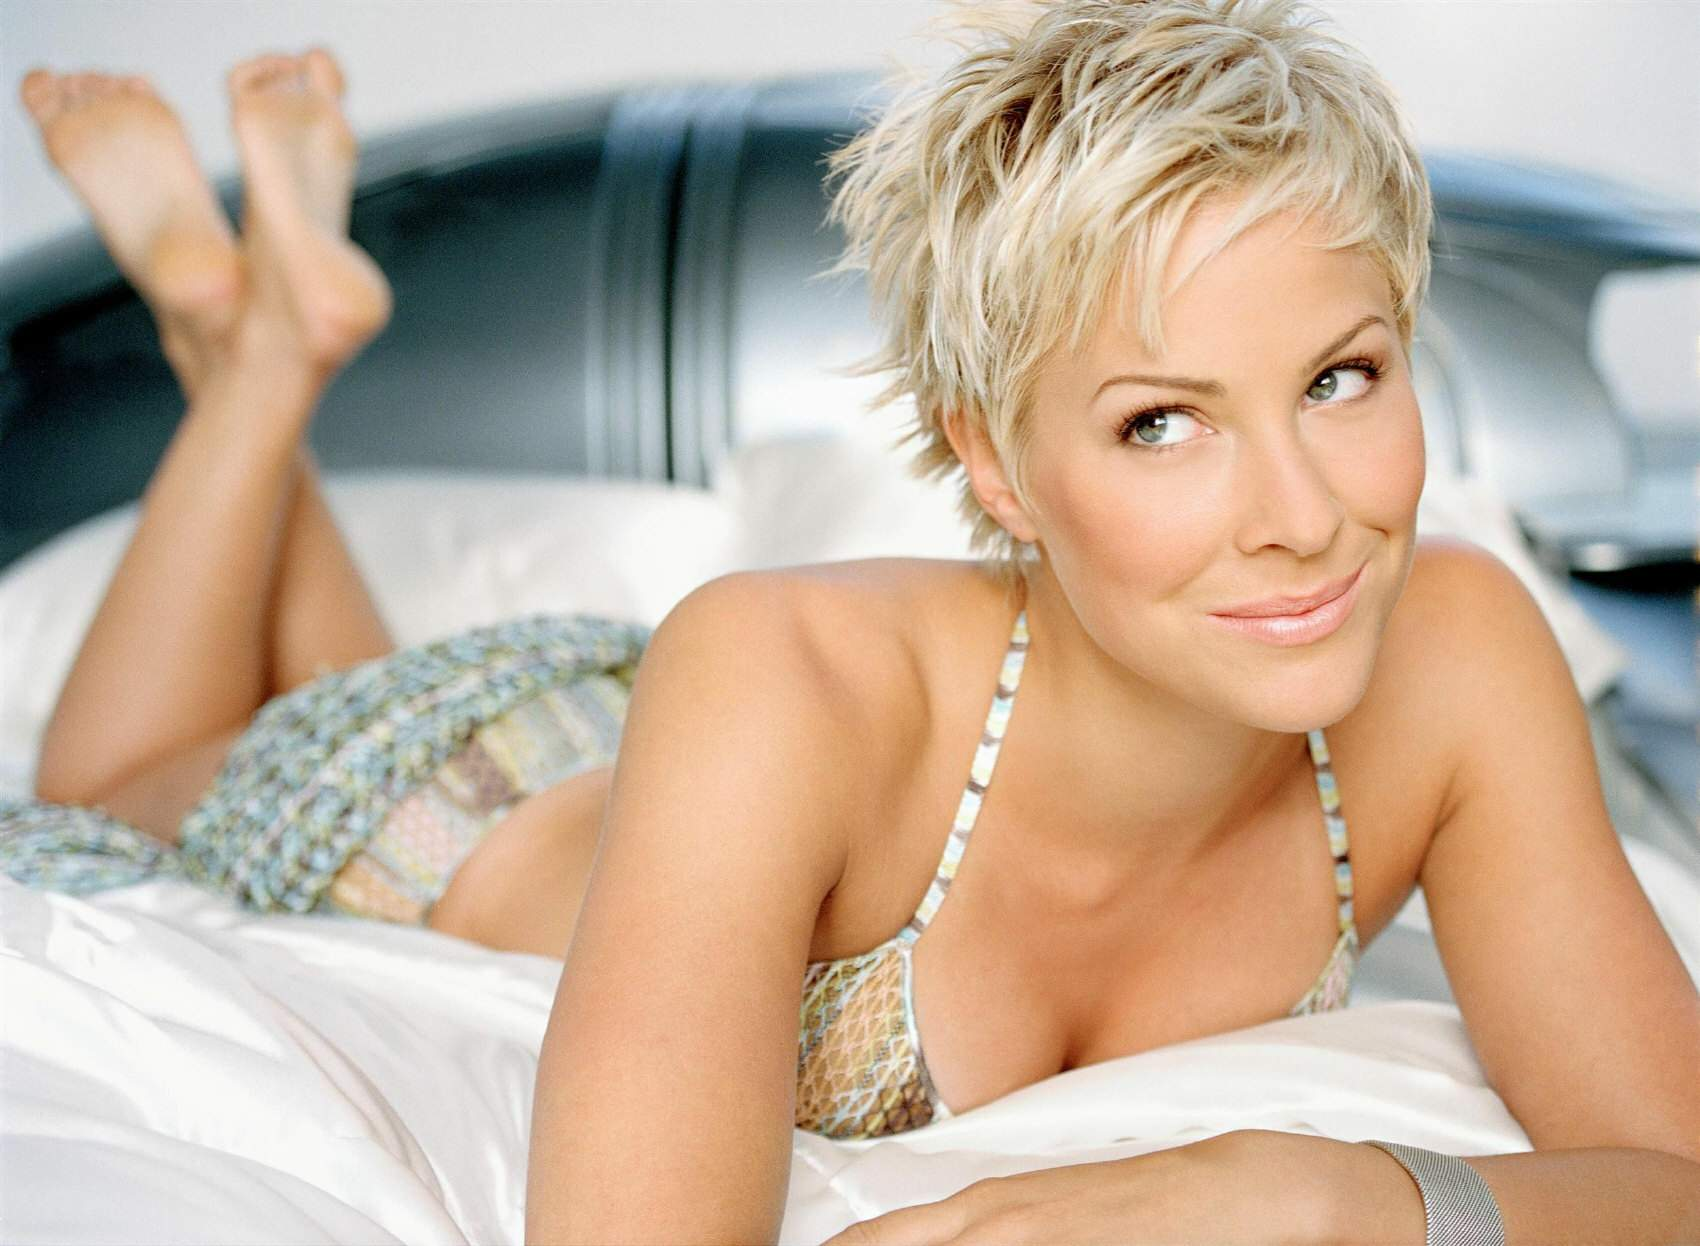 Not brittany daniel toes with